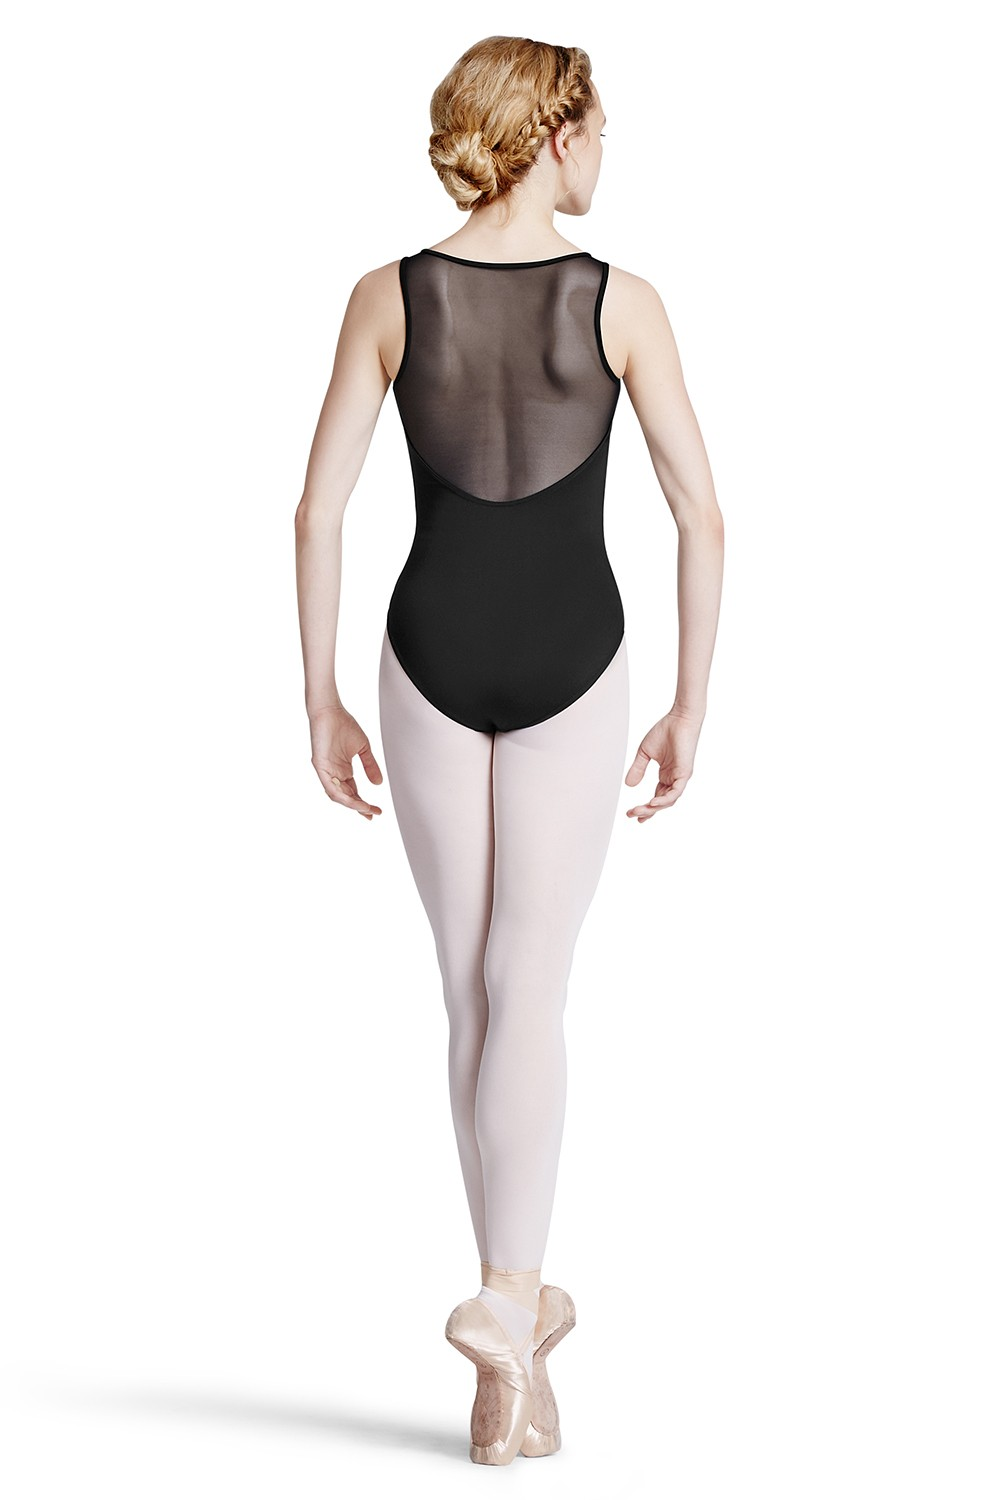 Briolette Womens Tank Leotards